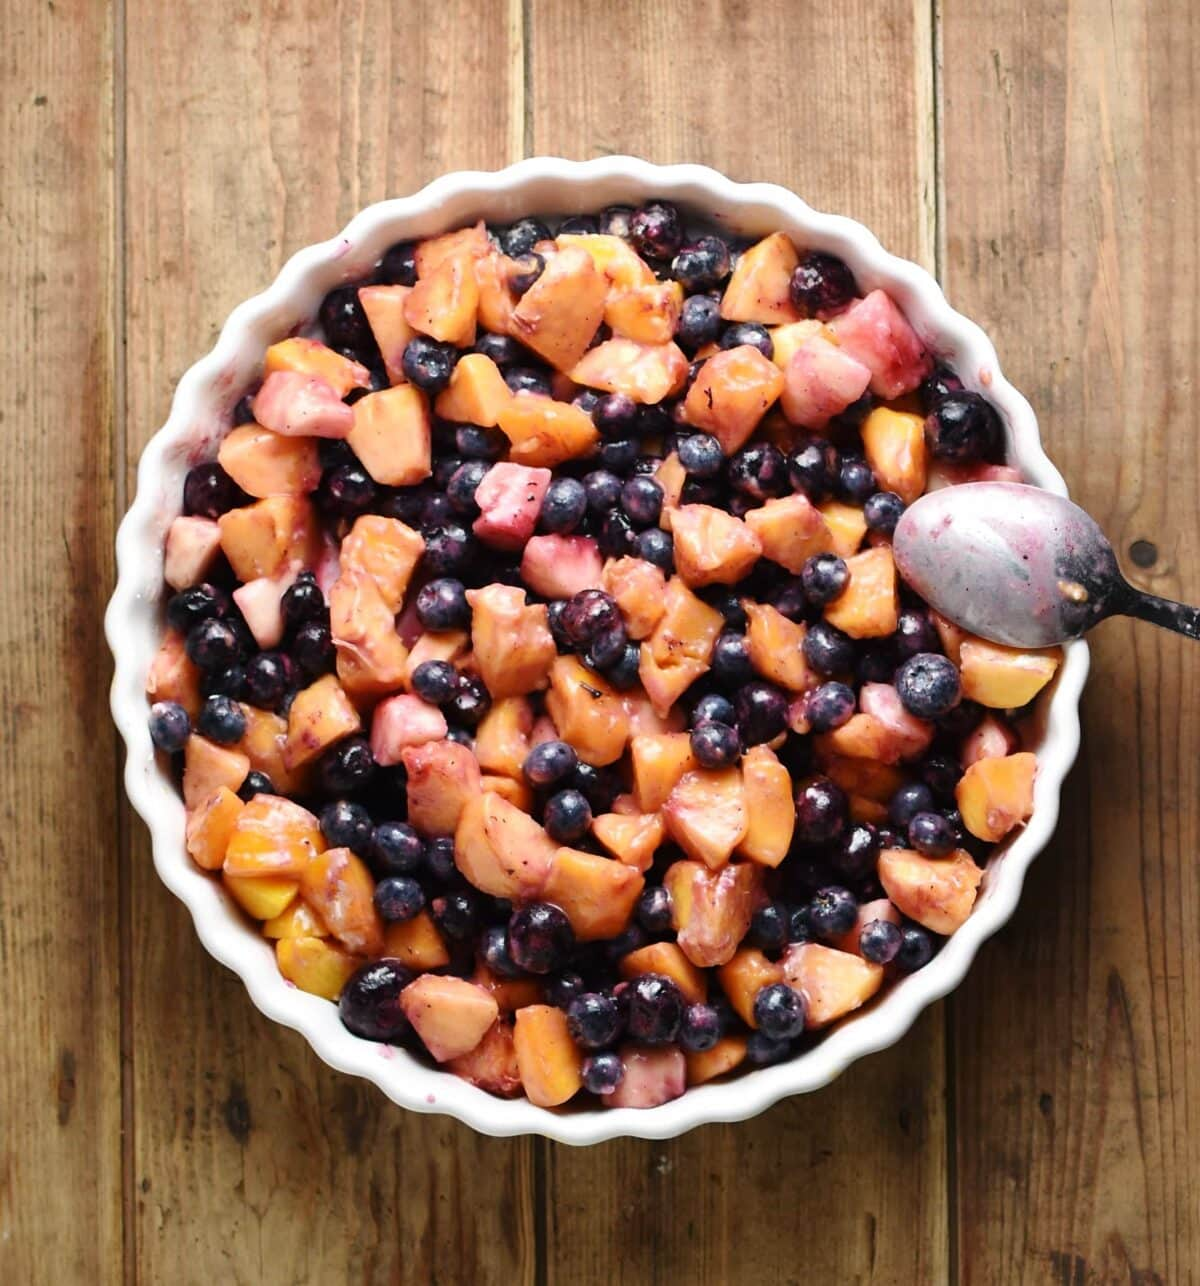 Top down view of cubed peaches and blueberries inside white round dish with spoon to the right.